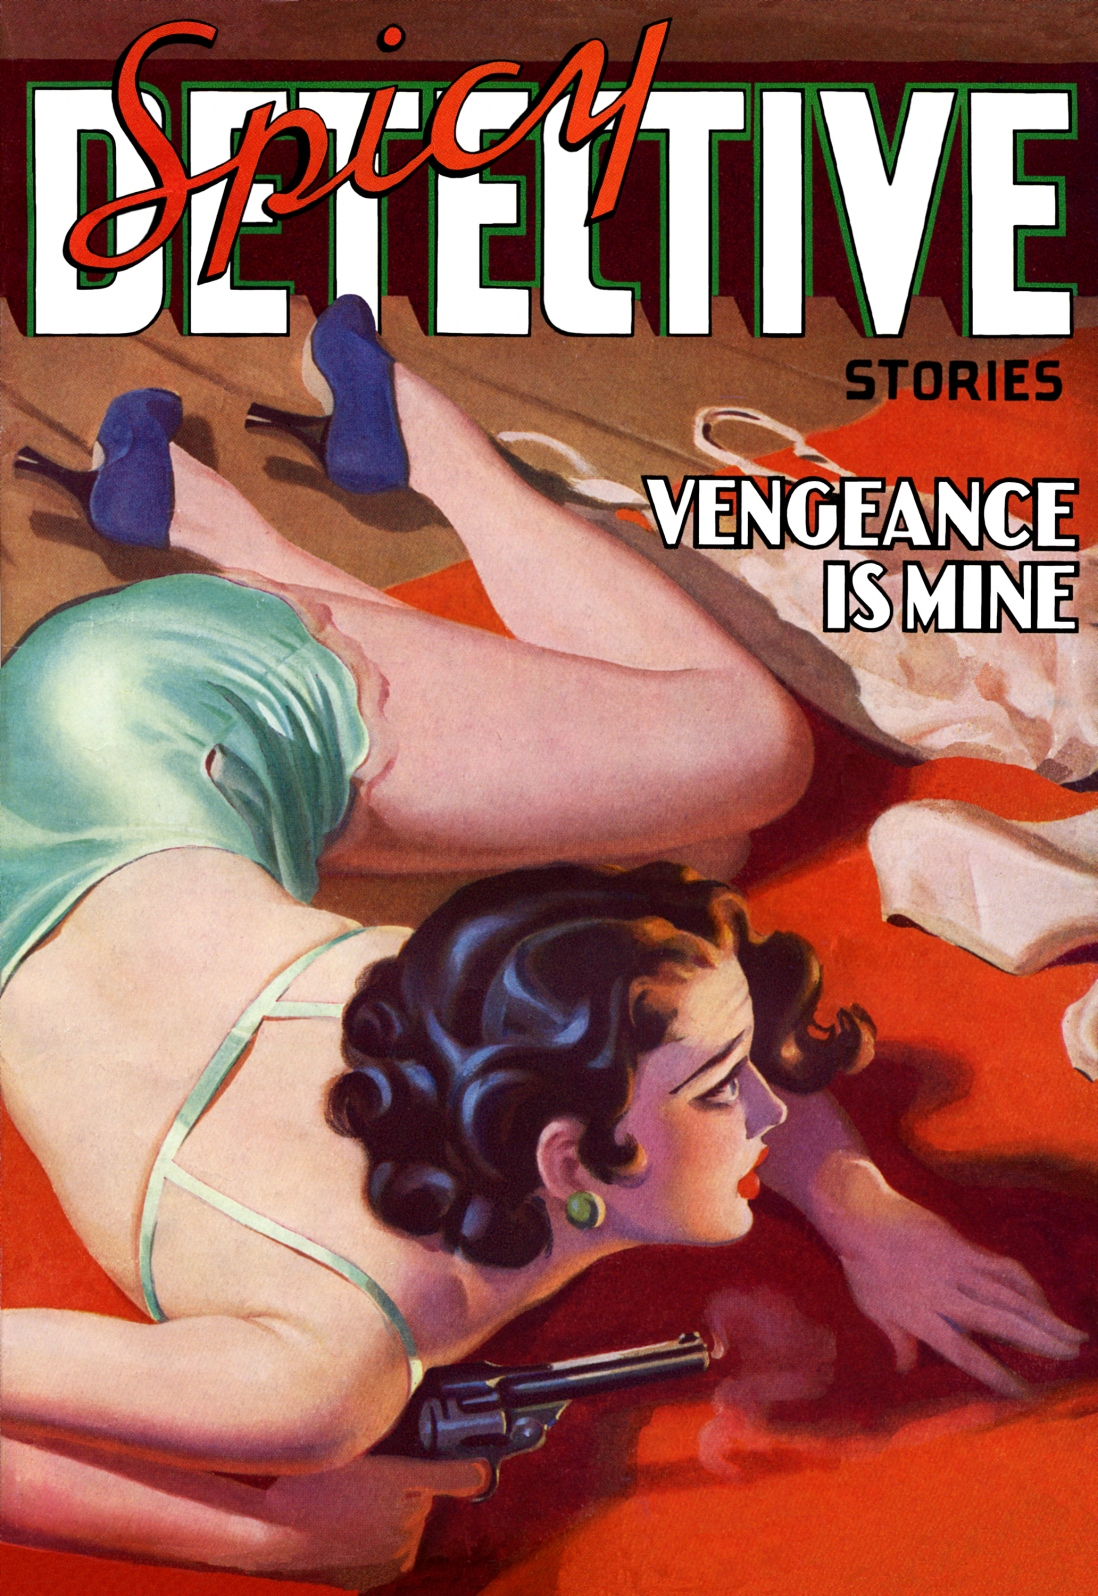 Illustrated book cover showing lady in her underwear lying on the floor holding a gun.